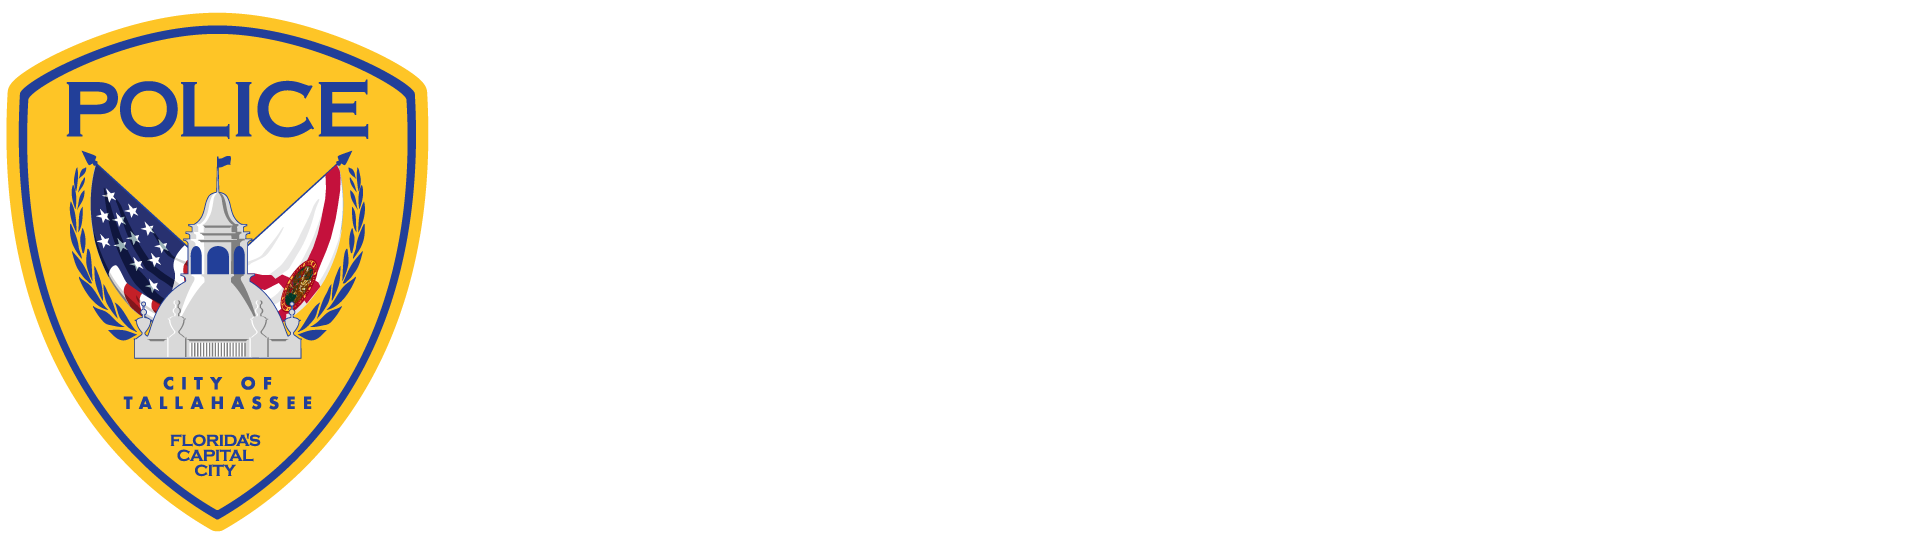 Tallahassee Police Department Logo